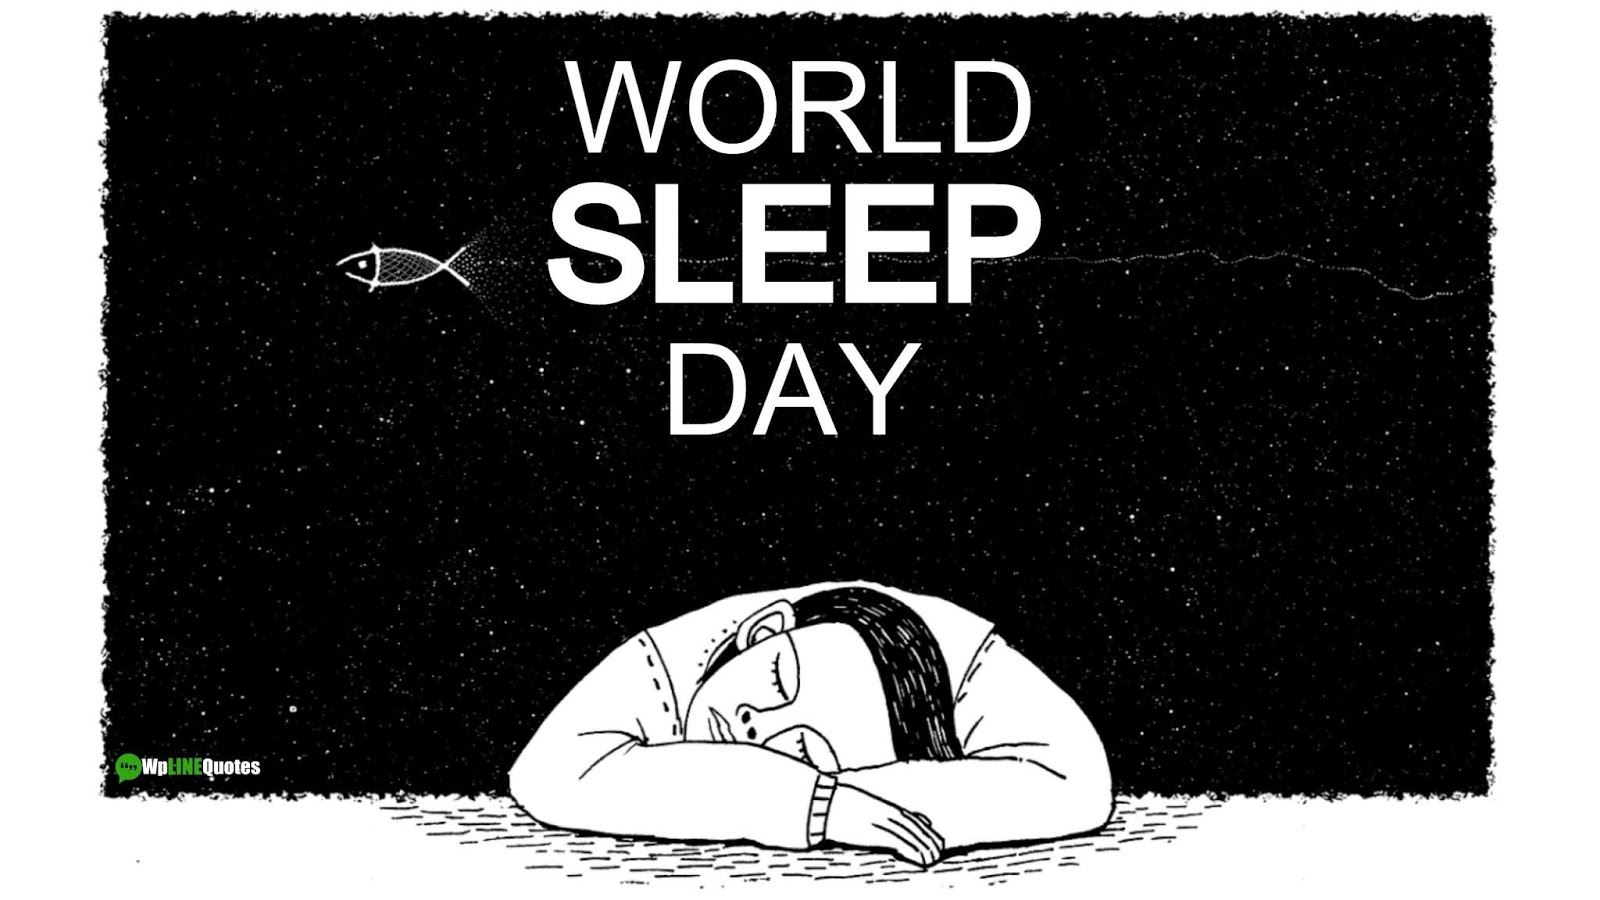 World Sleep Day Quotes, Wishes, Facts, Theme, Activities, Campaign, Images